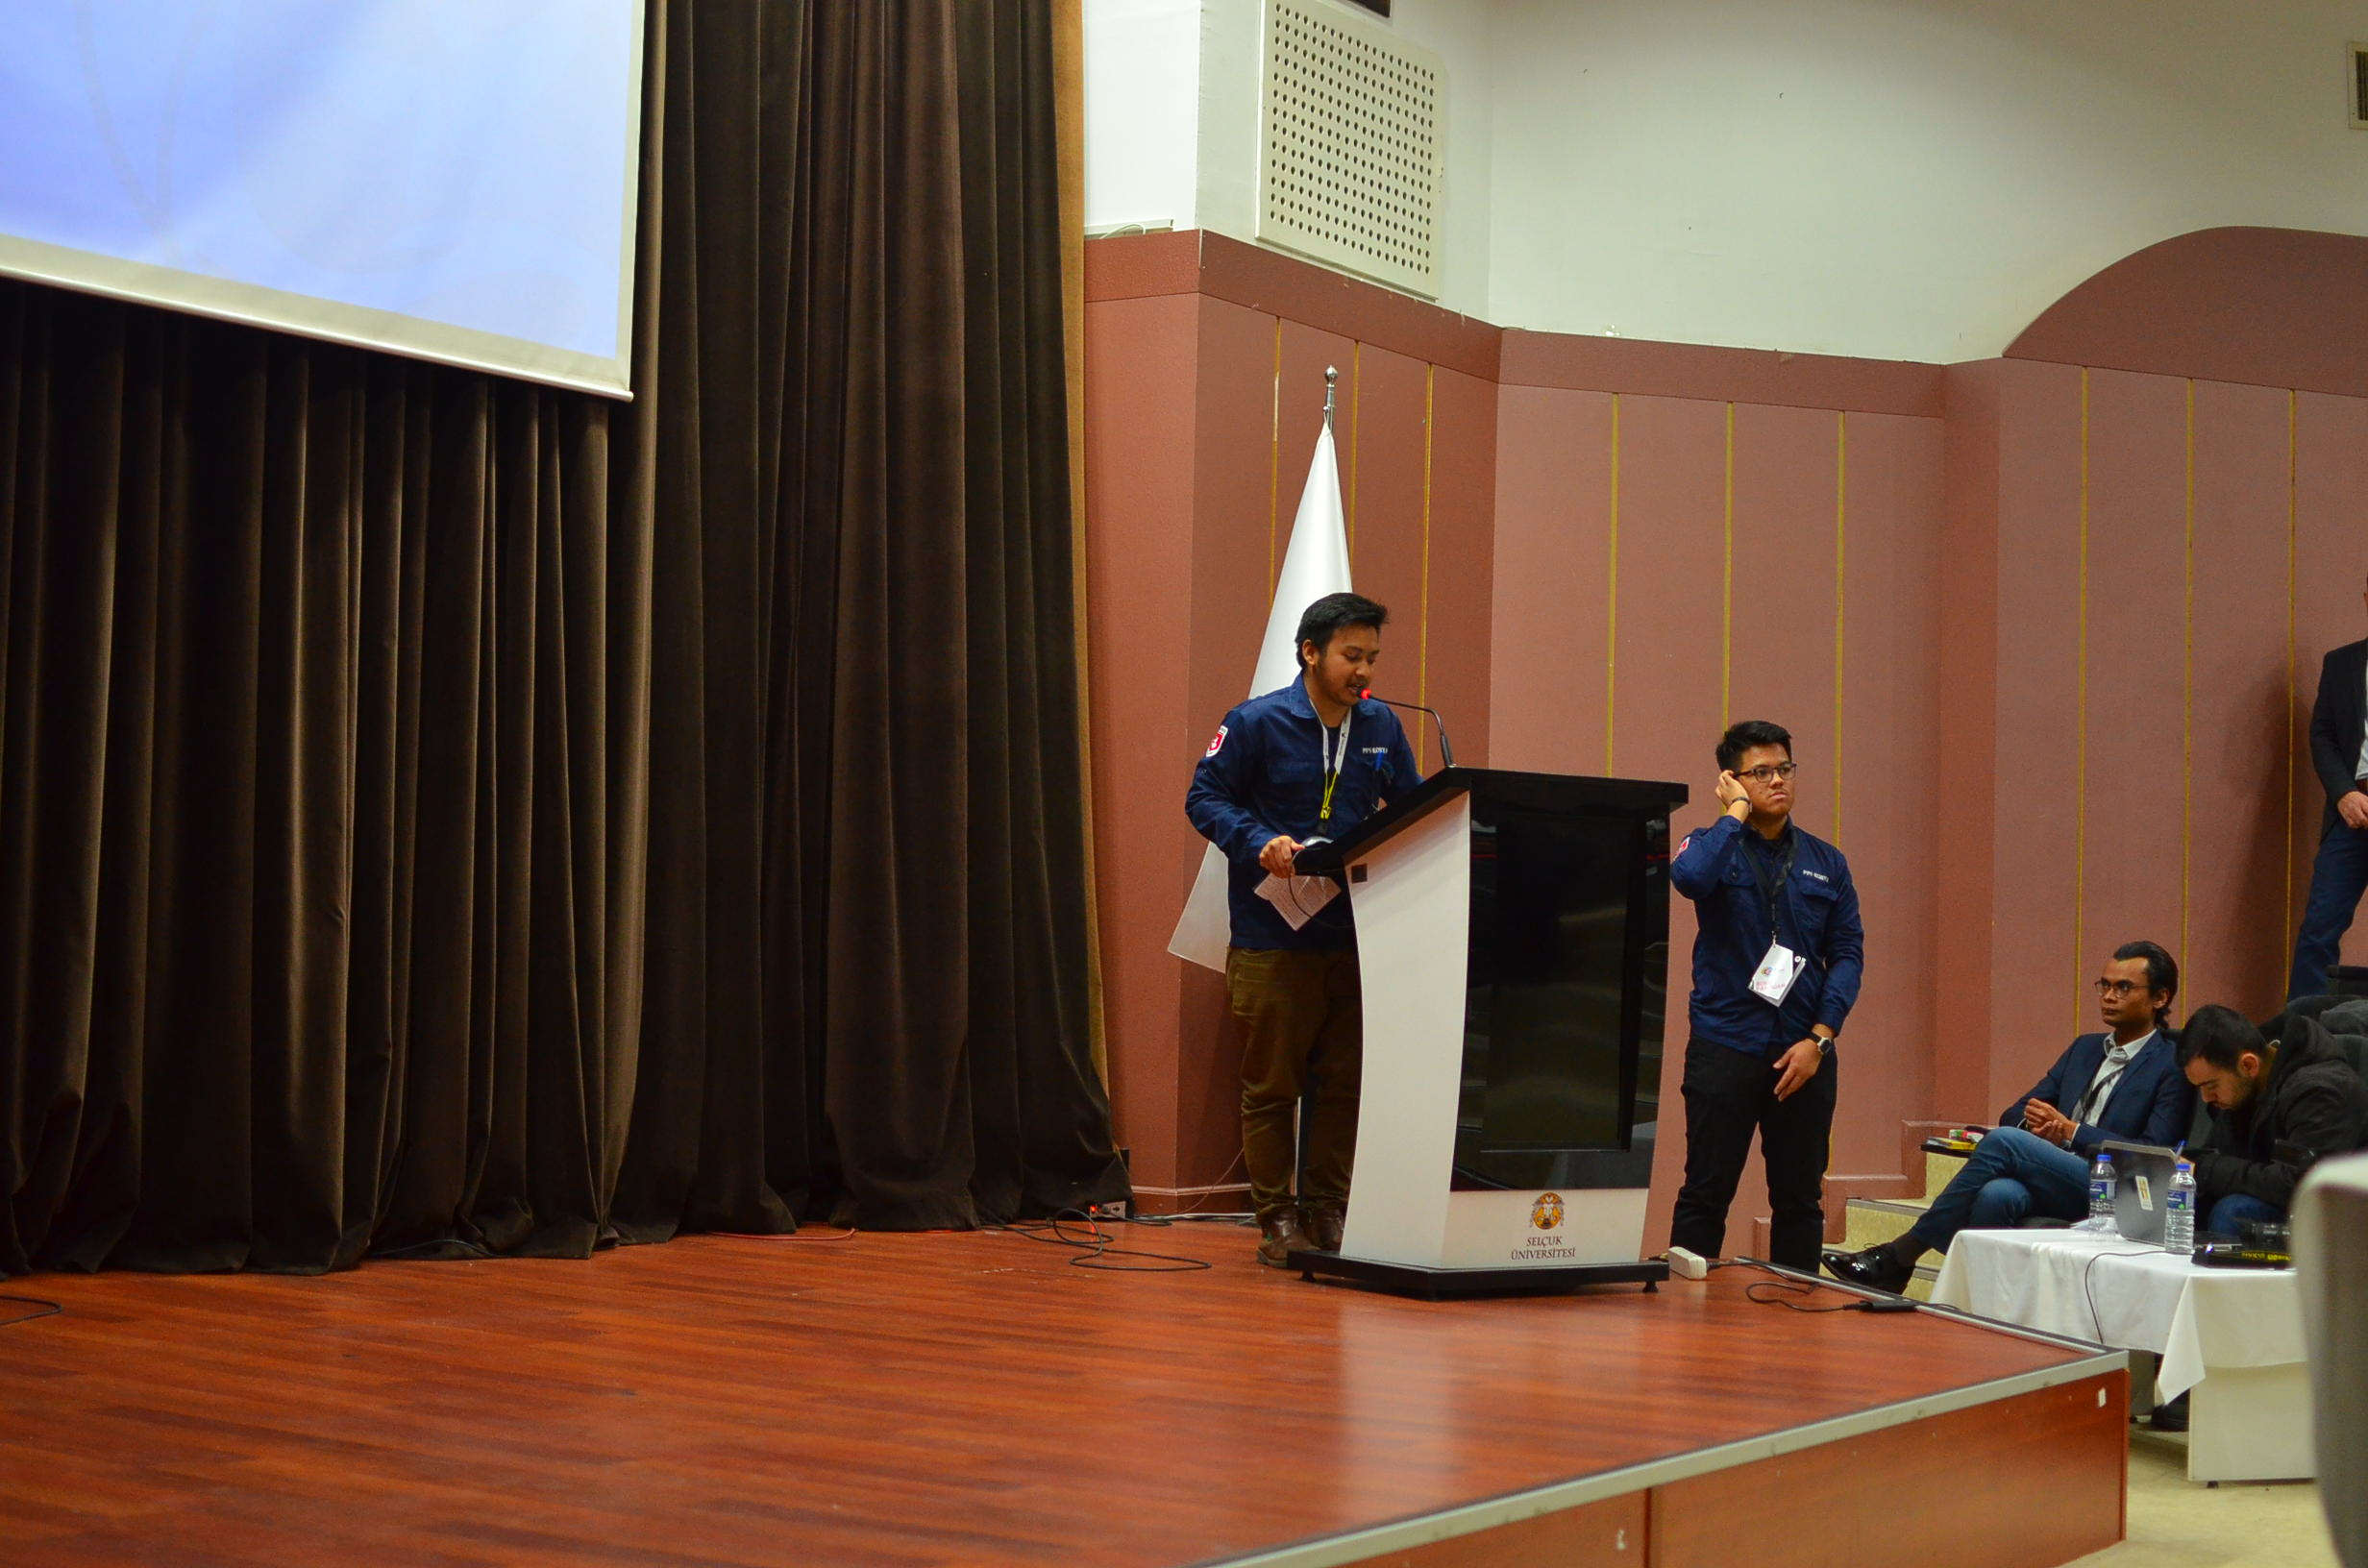 Chairman of Event, Adli Hazmi giving welcoming speech